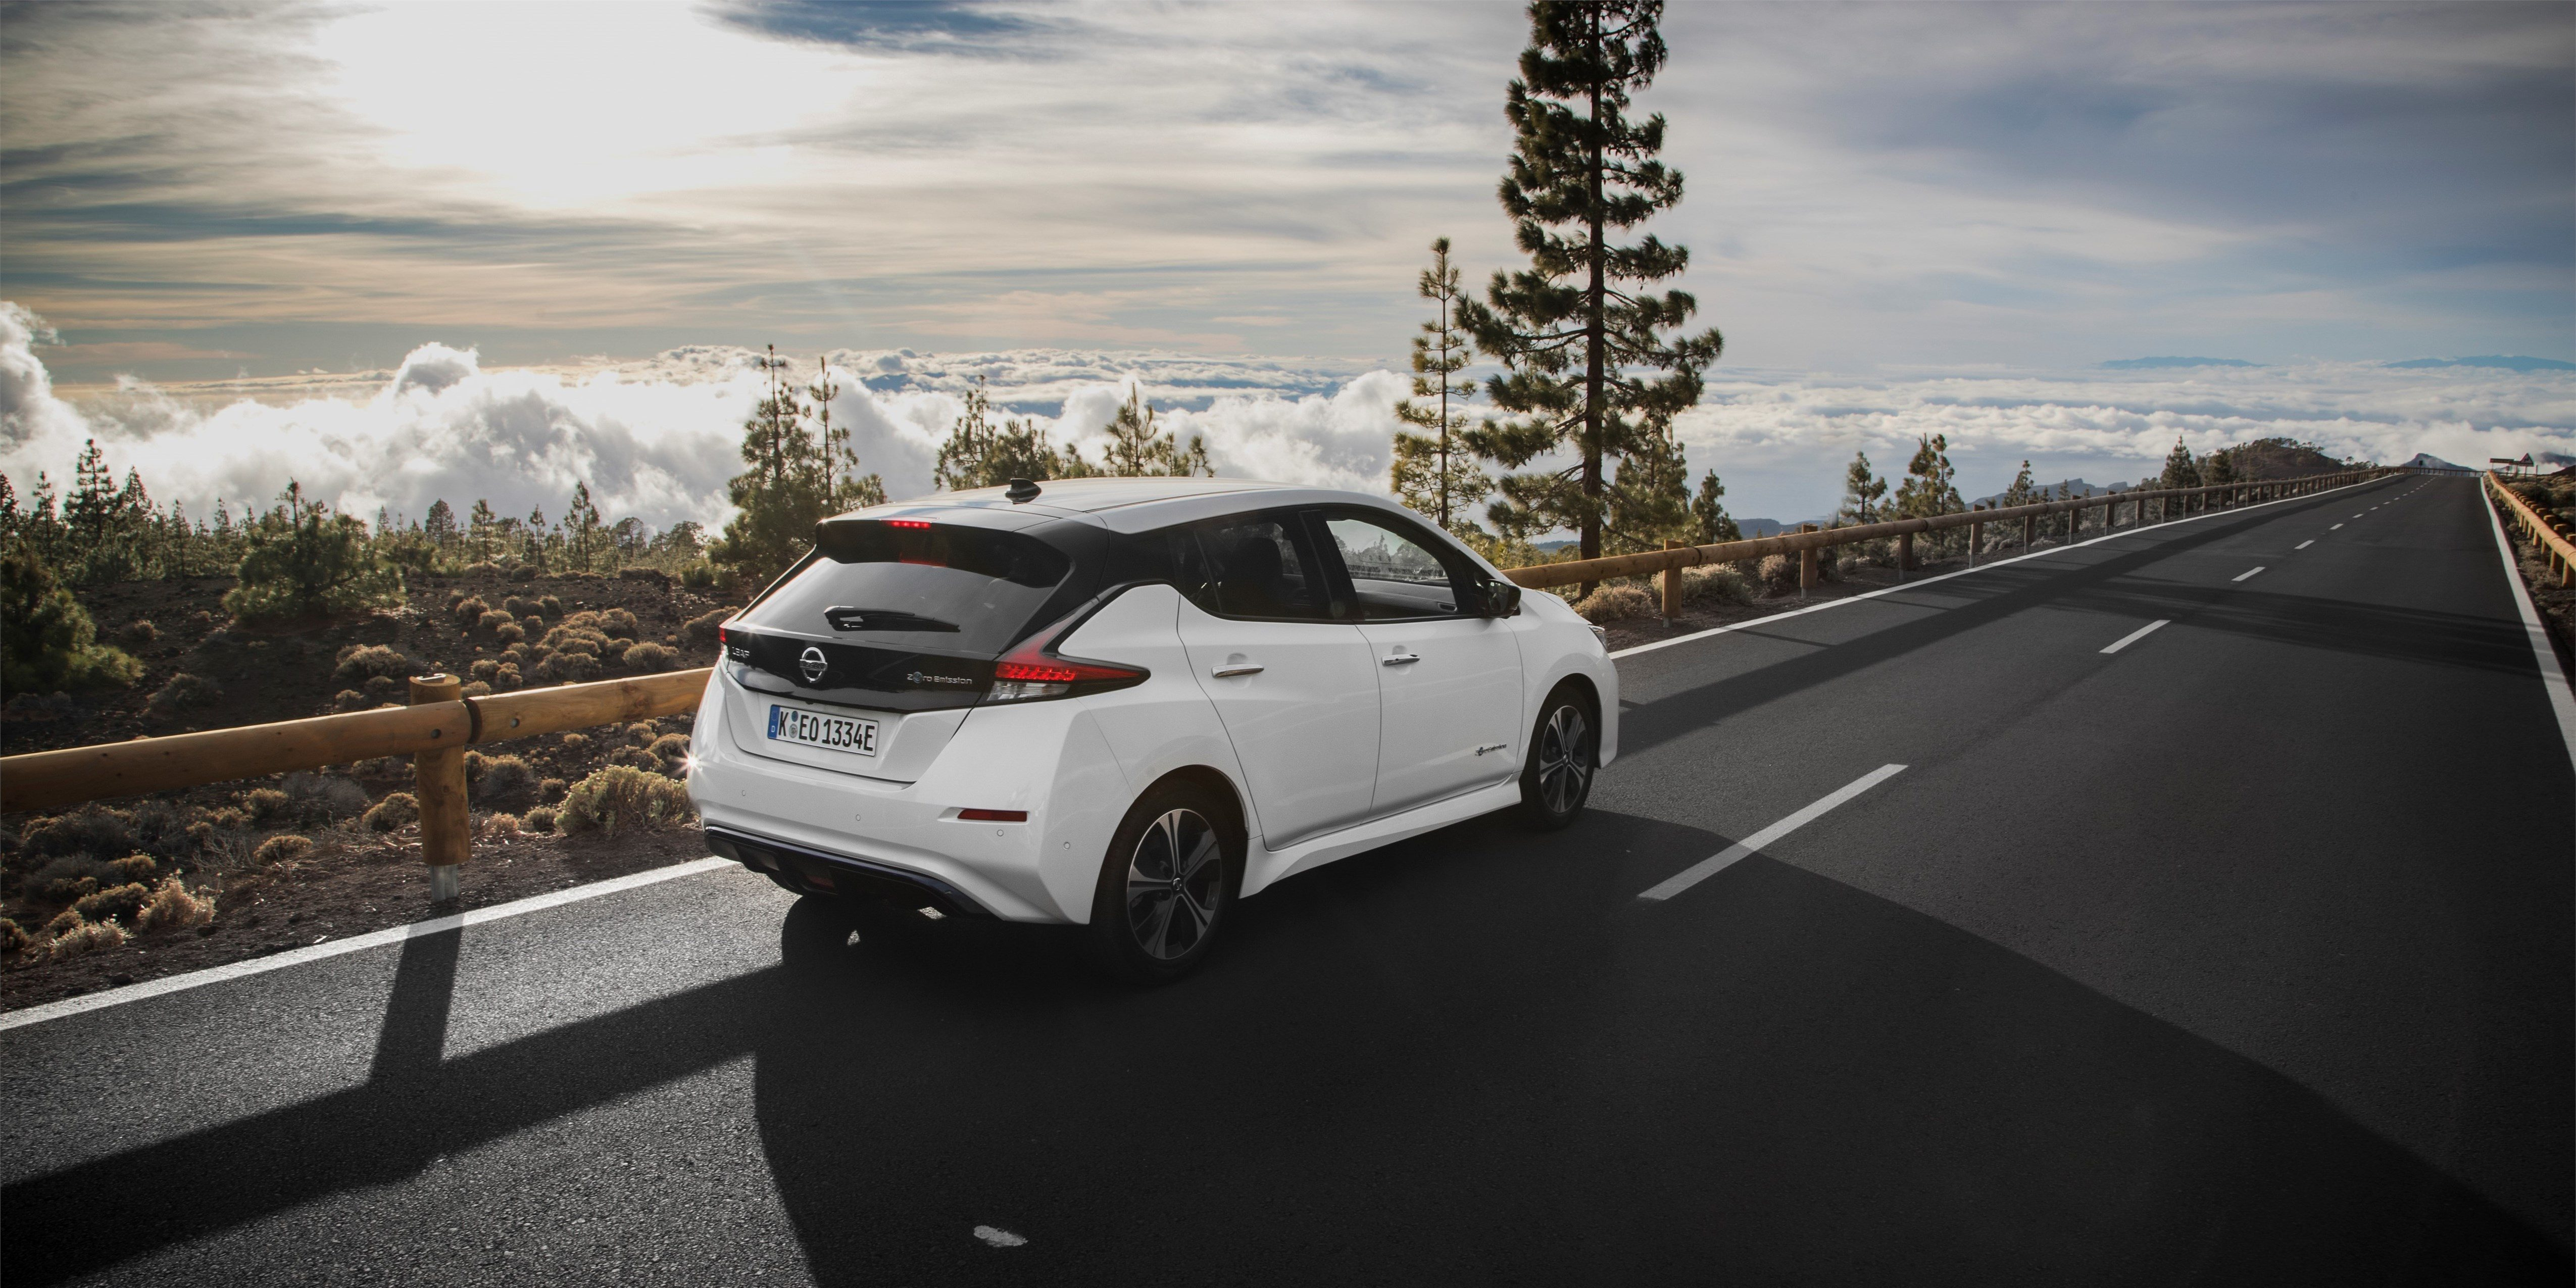 Nissan Leaf 2019 with 60 kWh battery pack